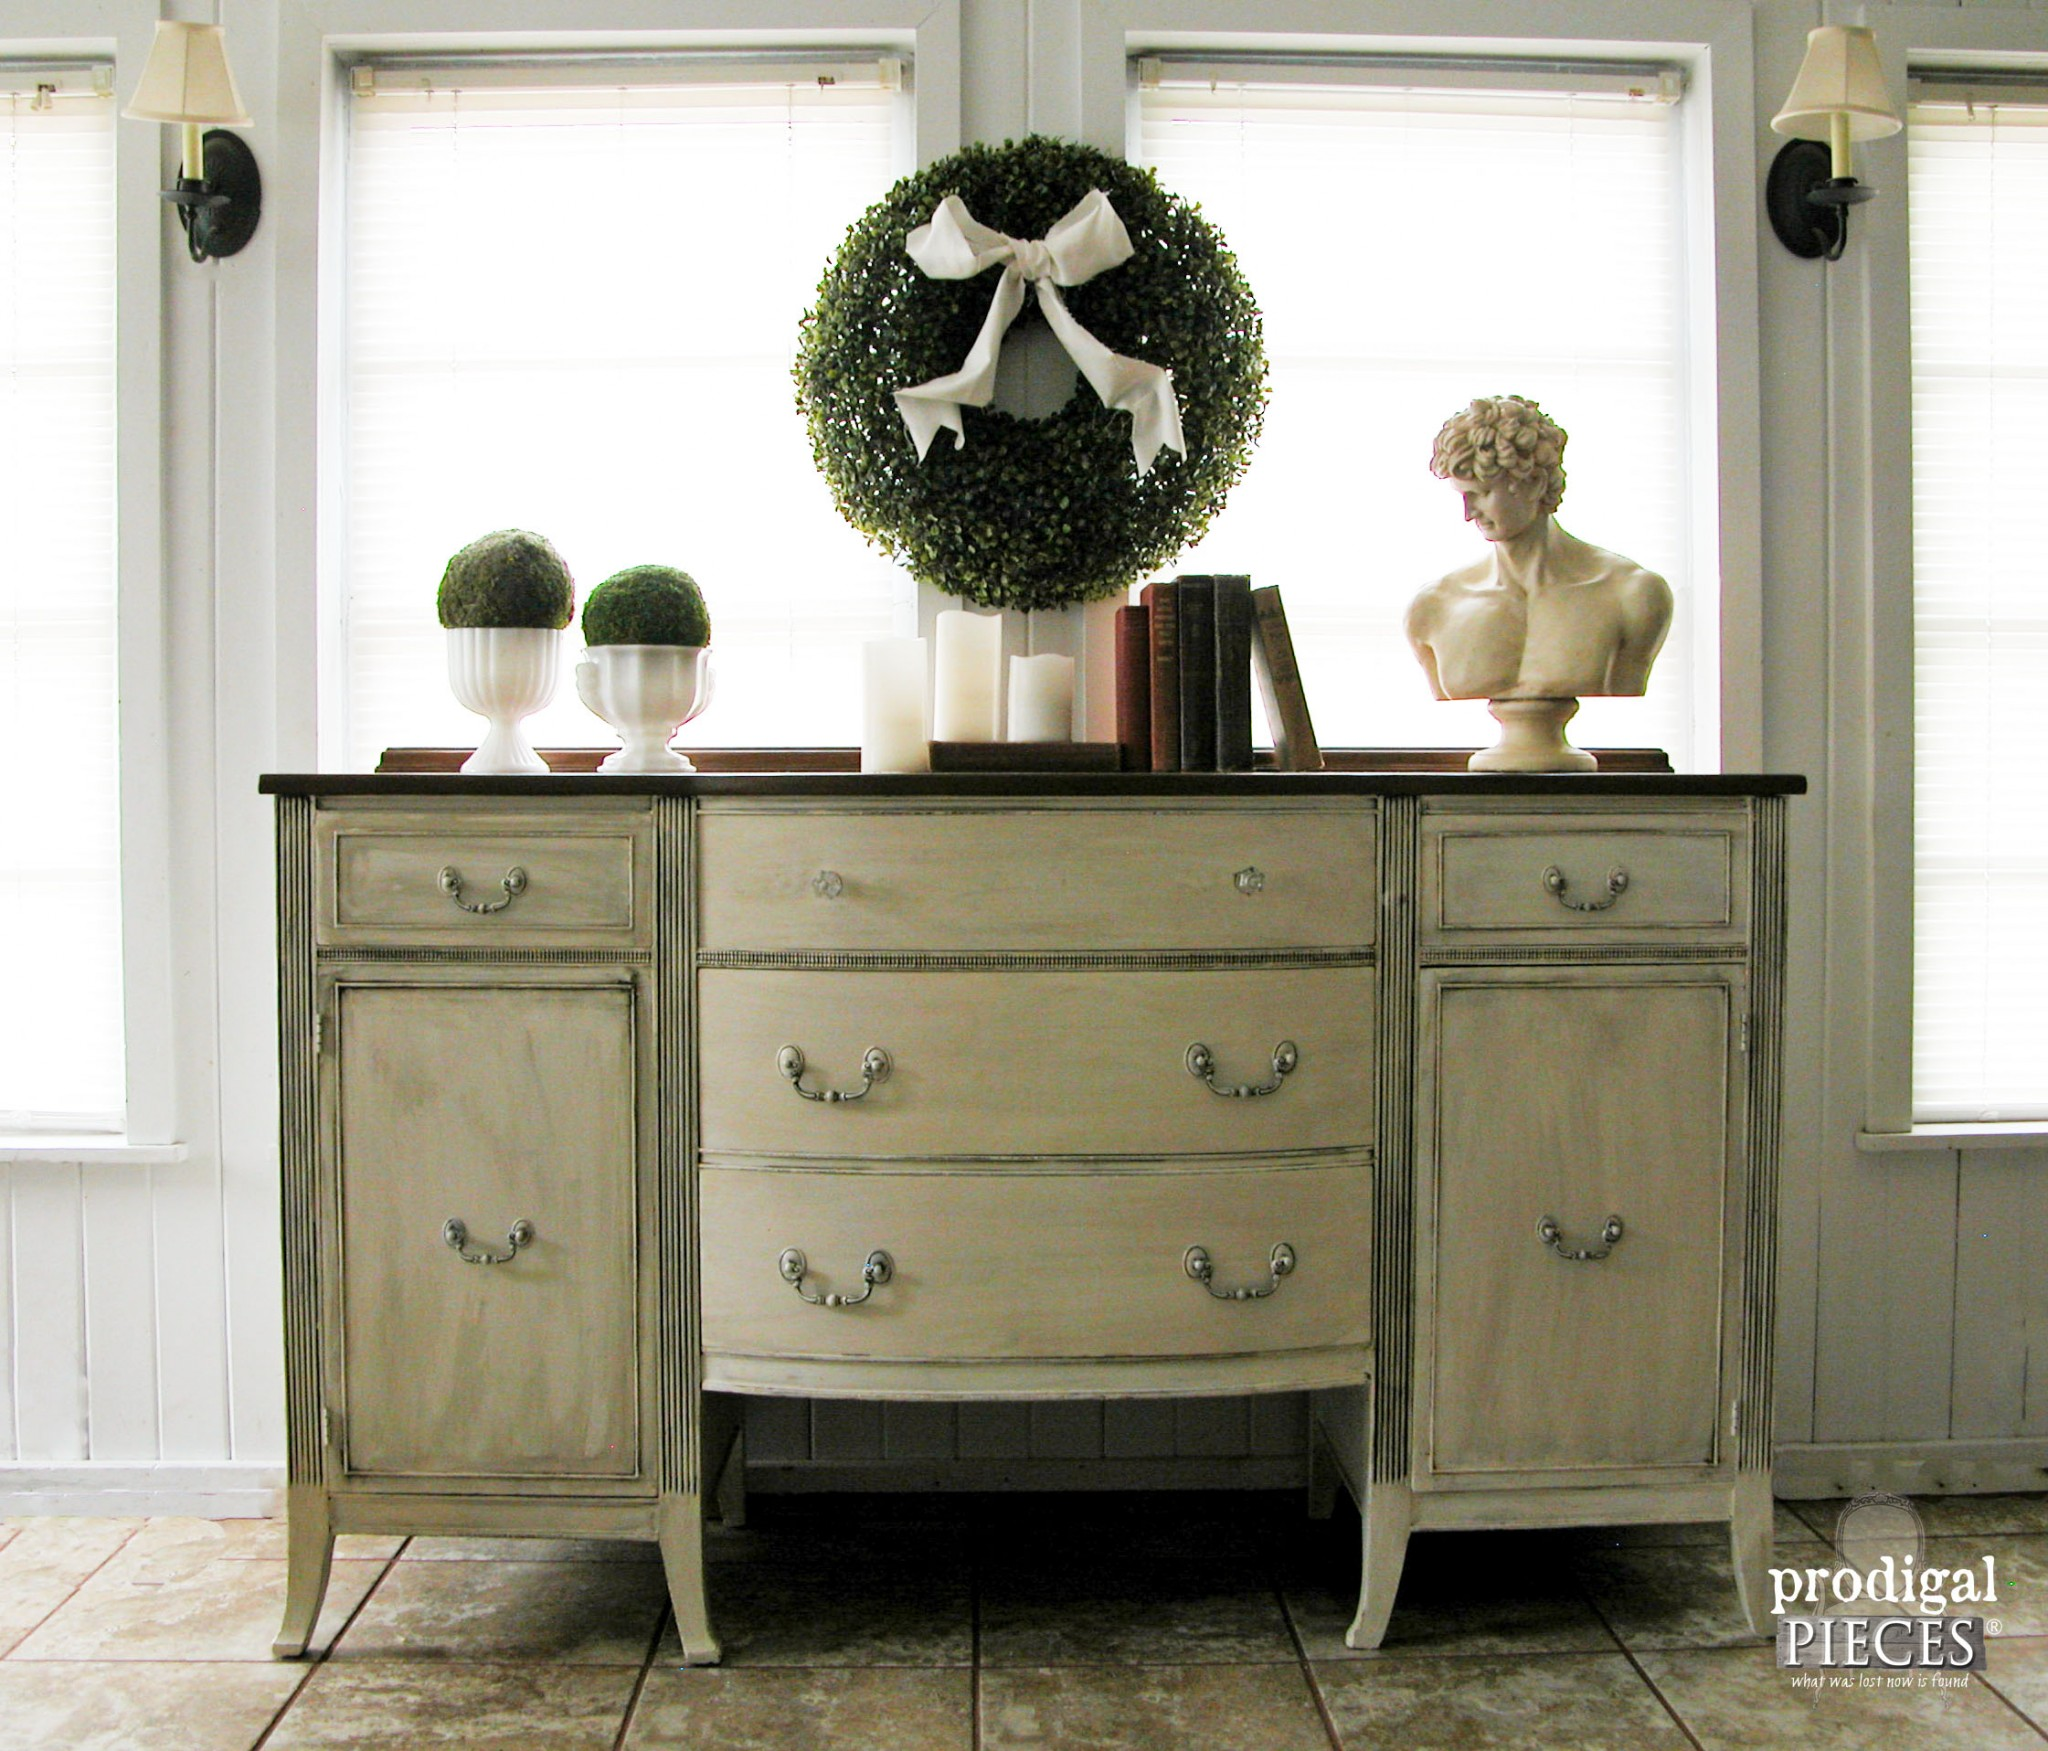 Vintage Duncan Phyfe Sideboard Gets Makeover by Prodigal Pieces | www.prodigalpieces.com